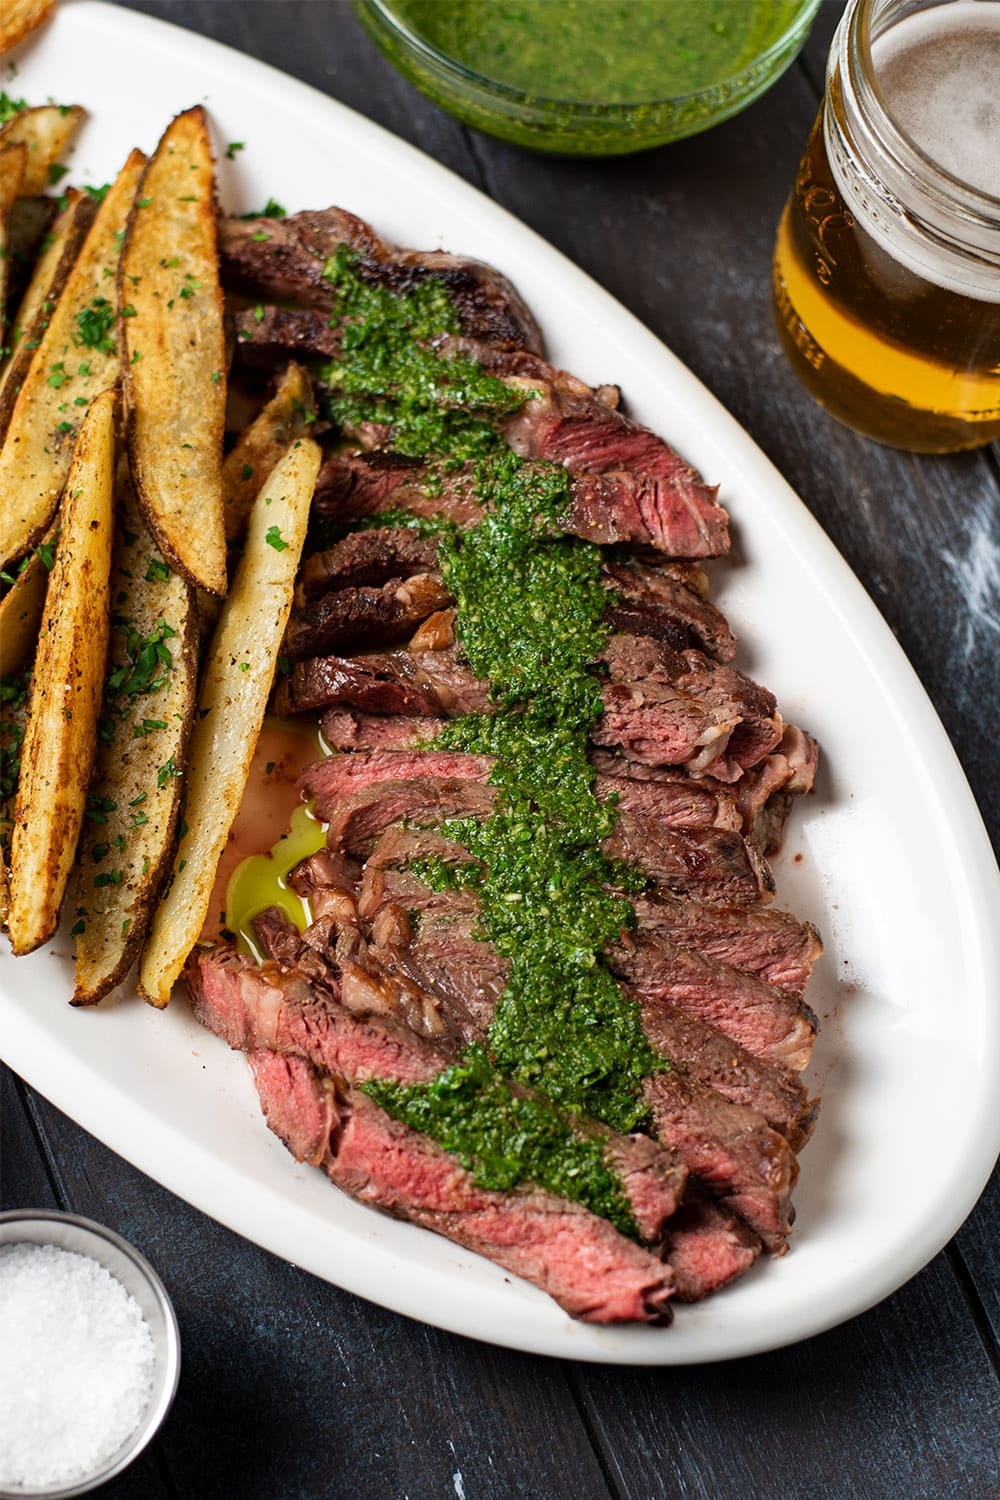 Ribeye served with chimichurri sauce